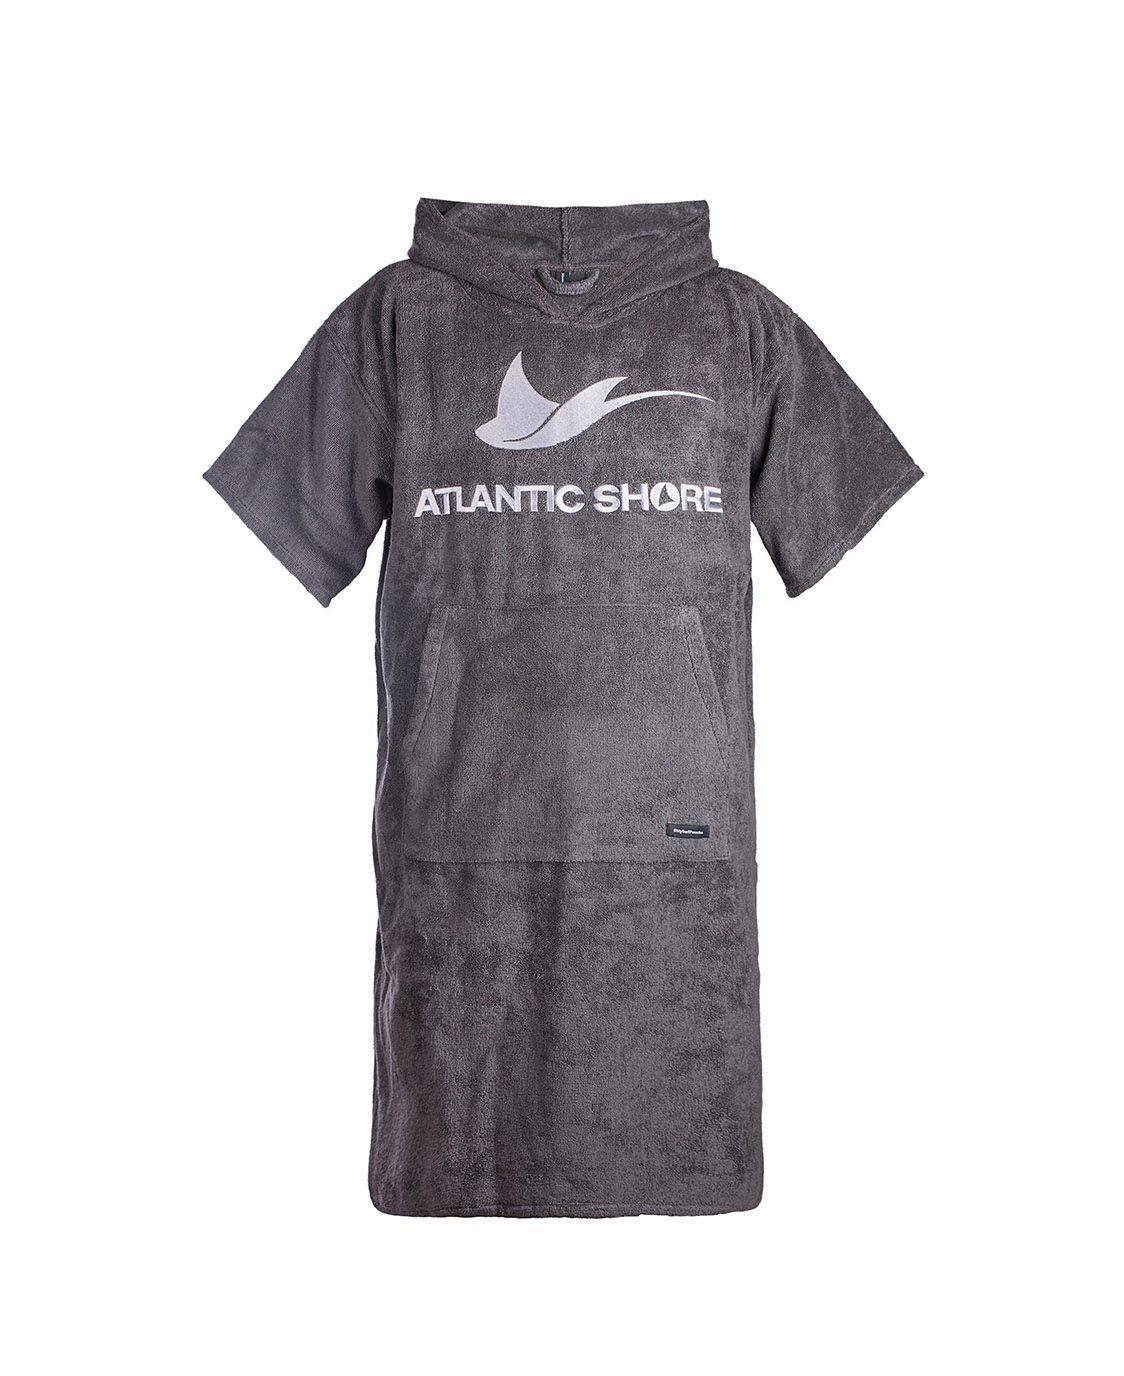 Atlantic Shore | Surf Poncho | Basic